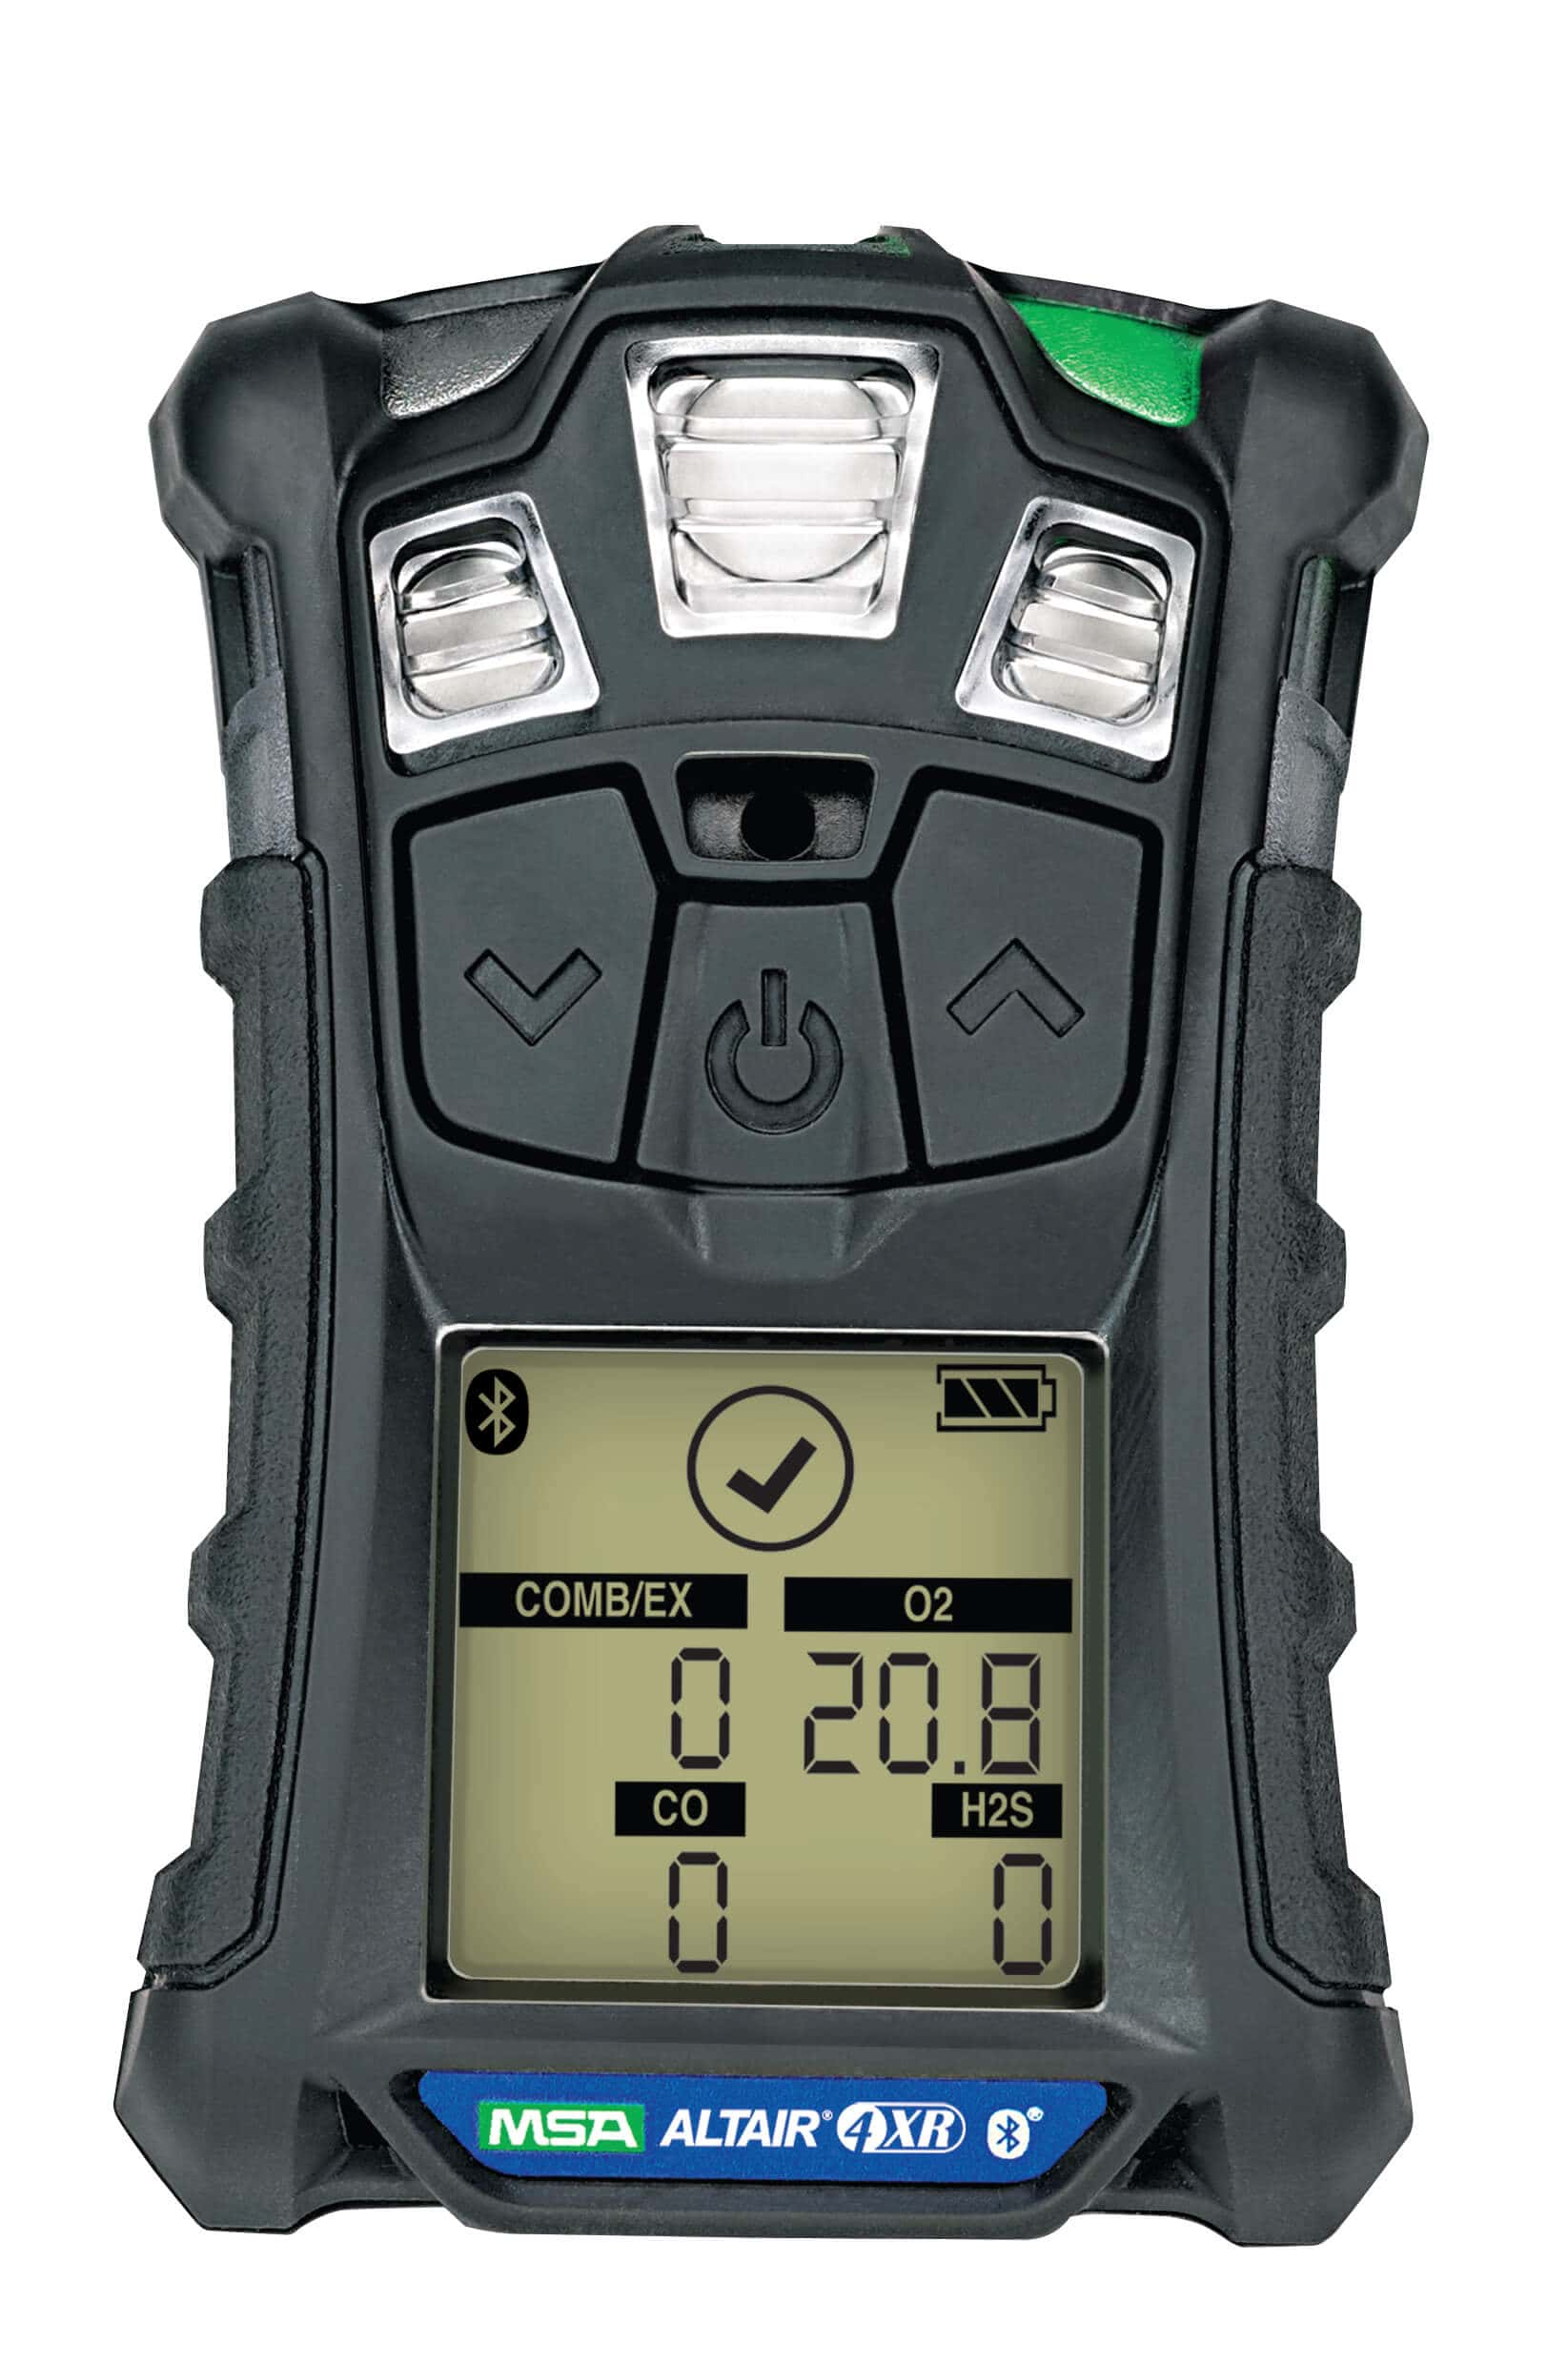 Msa Altair 4xr Buy Hire Or Service This Product